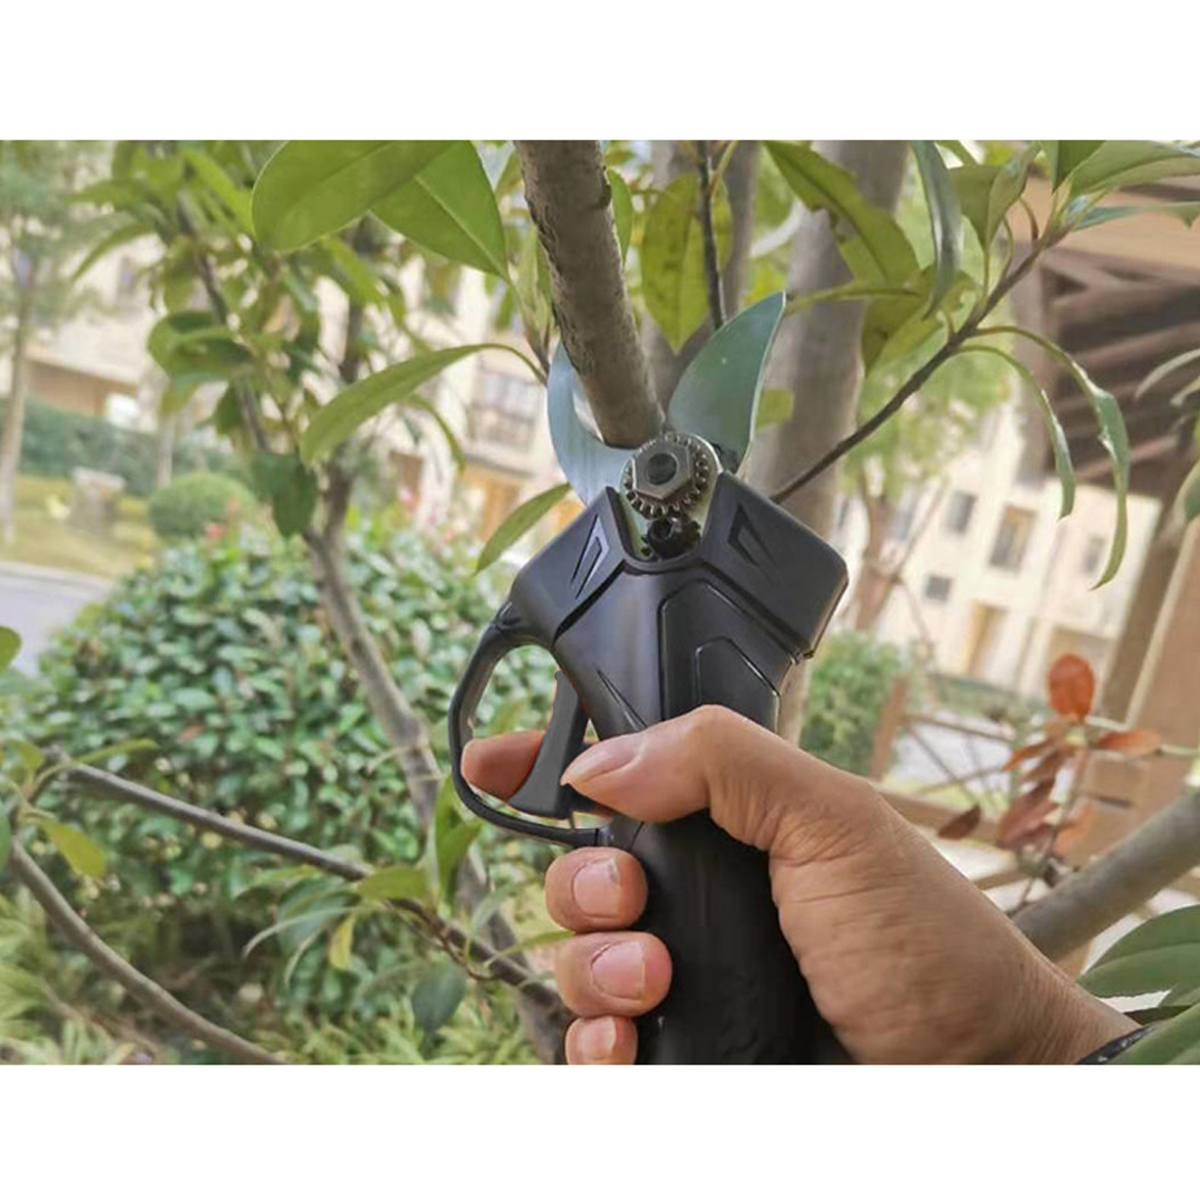 Branch Pruning Shears 2X Lithium-ion Battery 16.8V Rechargeable Cordless Secateur Branch Cutter Pruning Shears for Sharp Cutting Tools